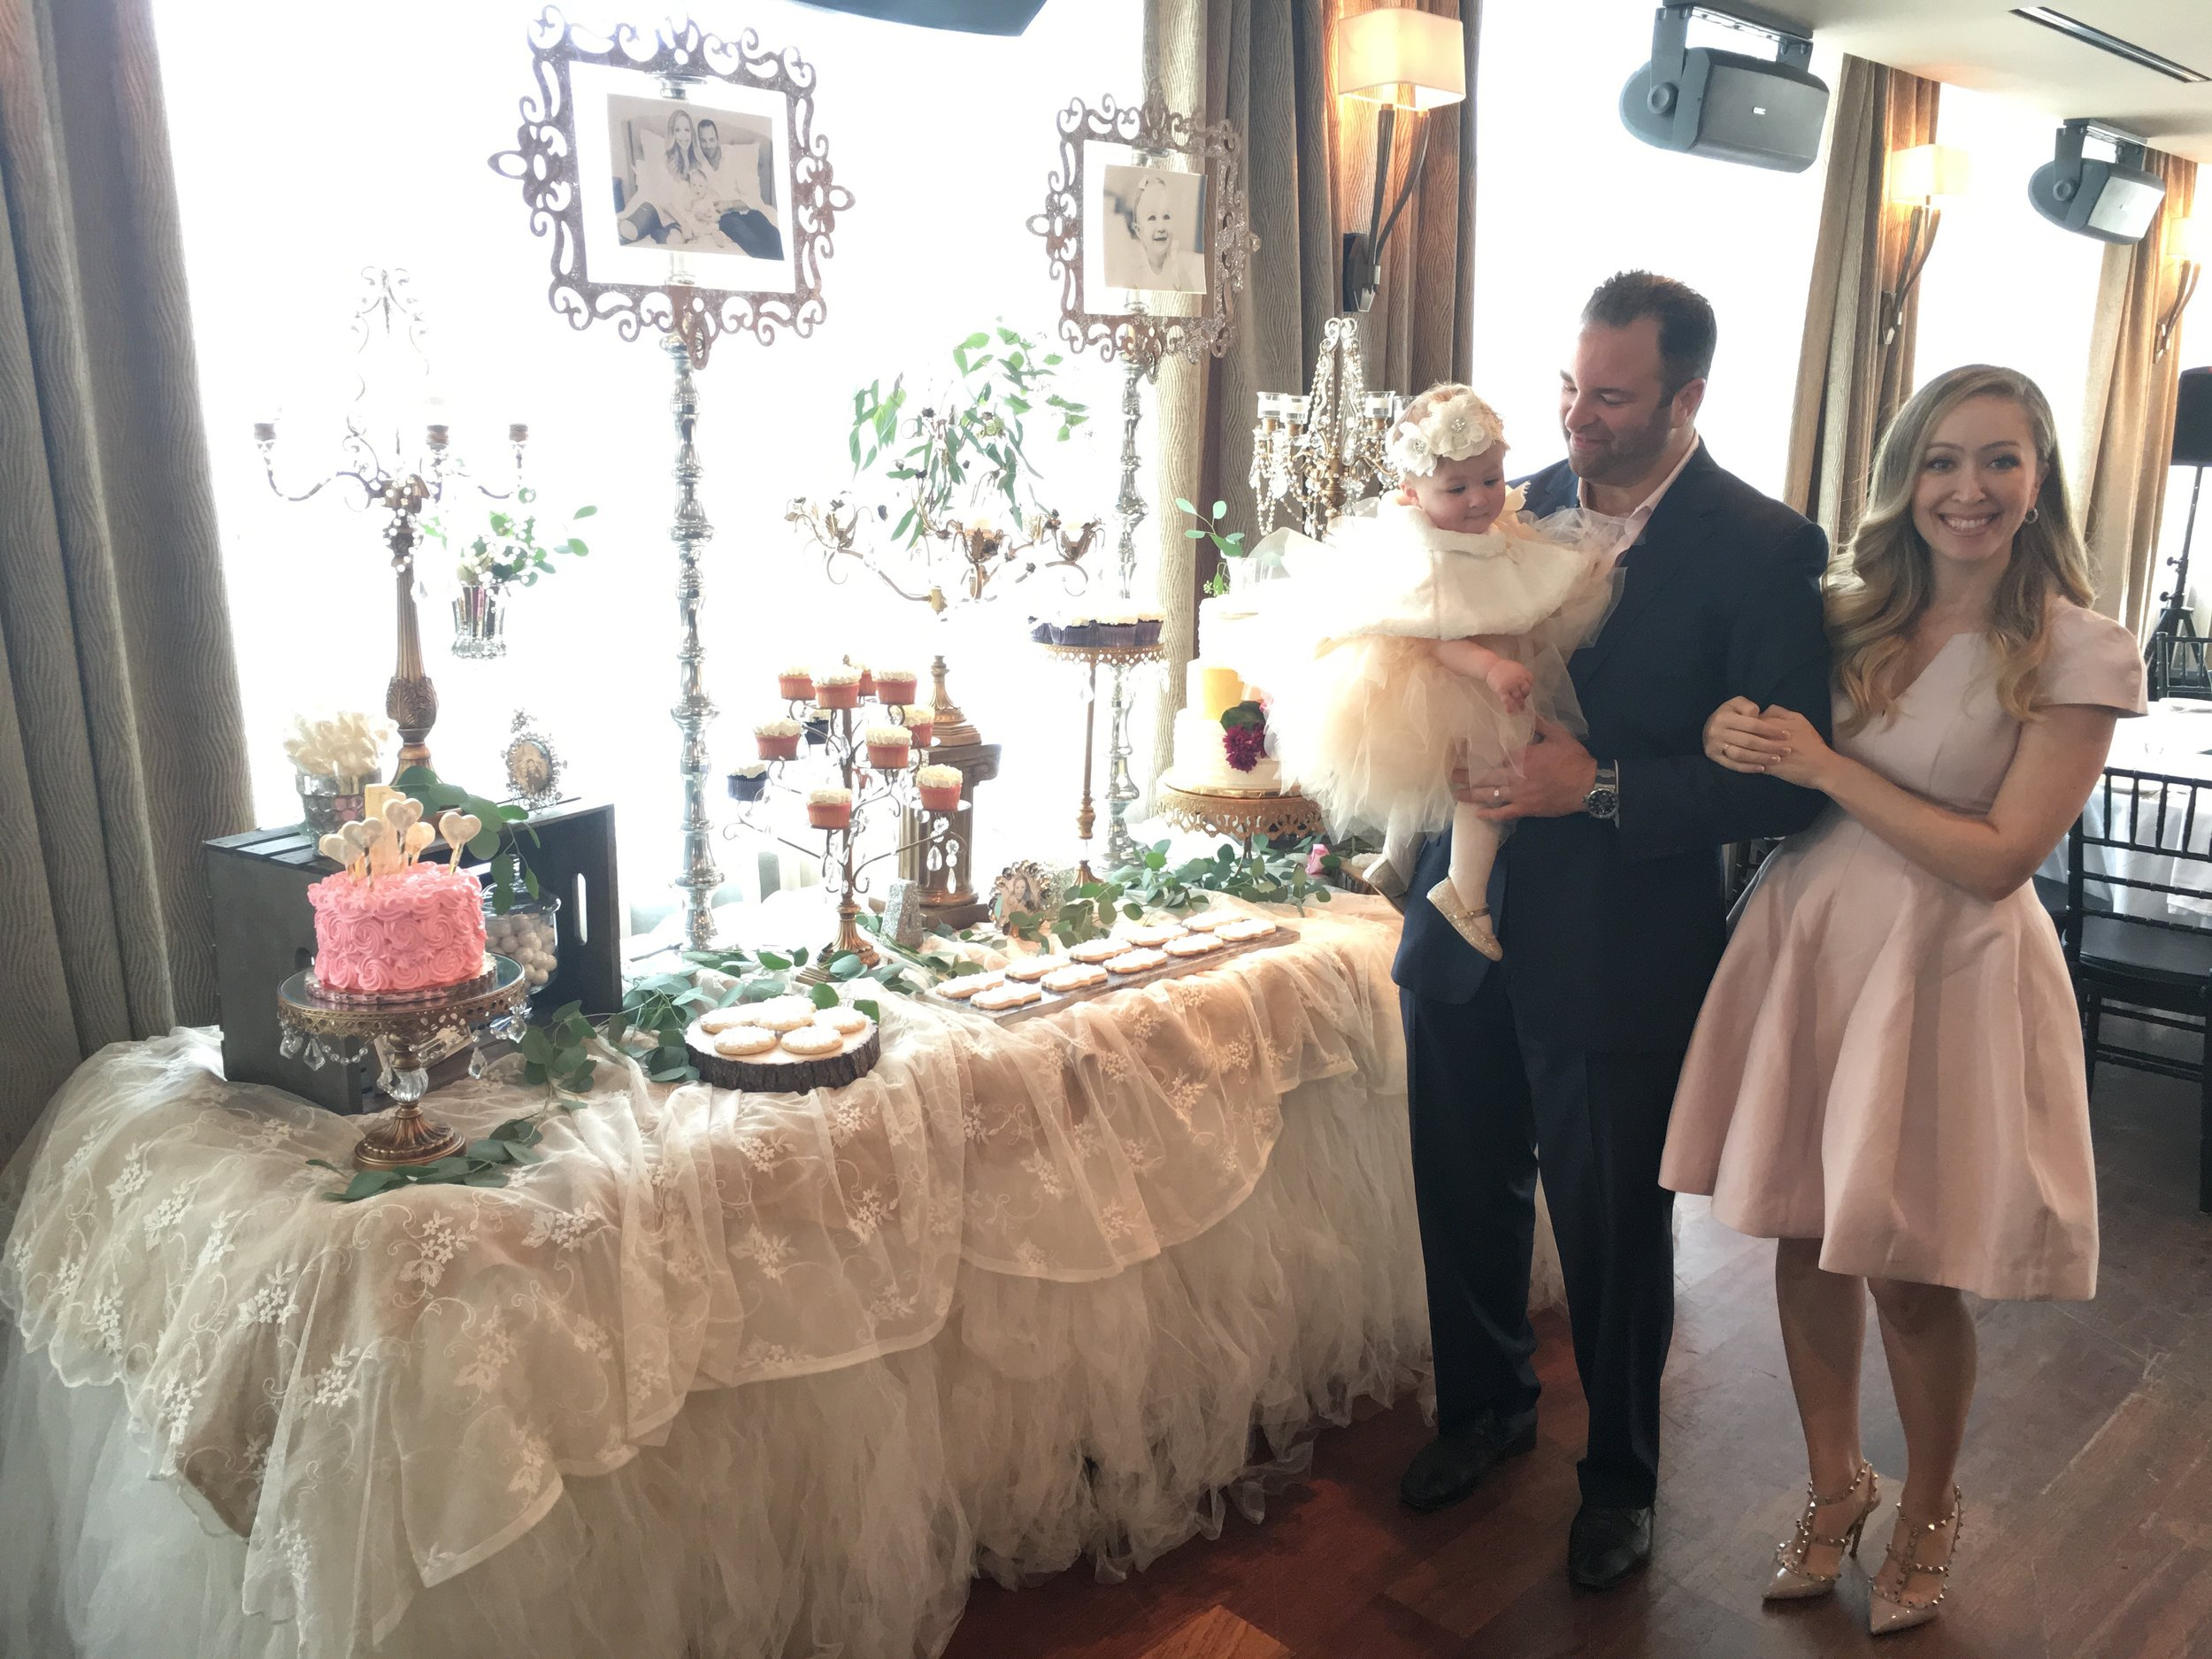 beautiful-and-blessed-events-hendricks-tavern-first-birthday-ava-rose-011